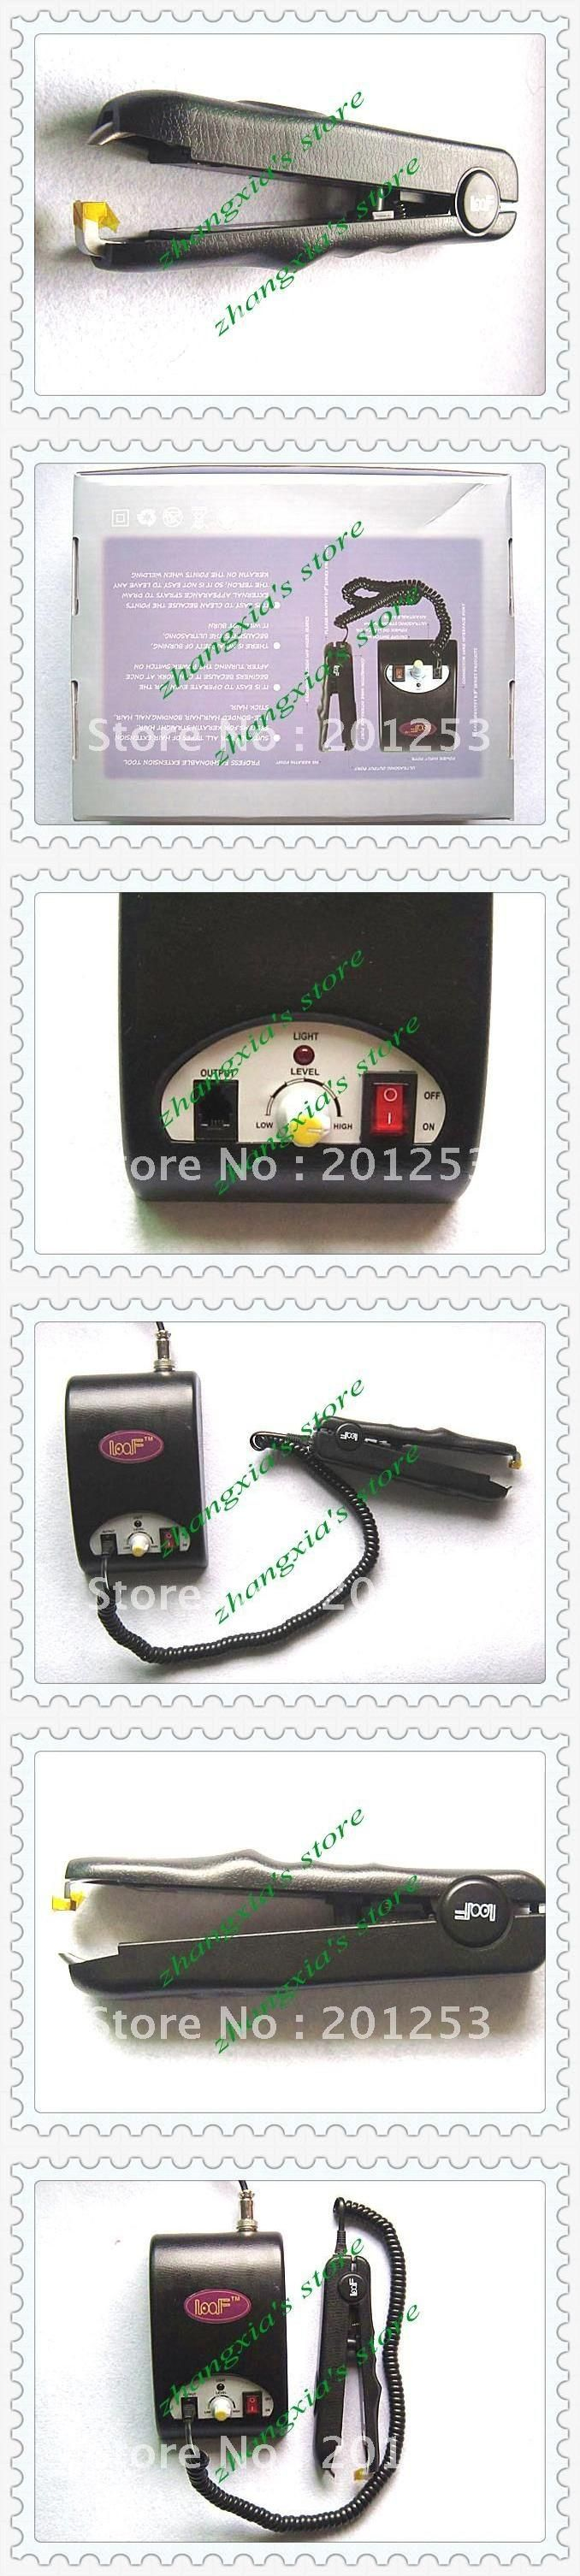 Ultrasonic Professional Hair Extensions Fusion Iron/Connnector, Hair Extension Tools , 1pcs/lot